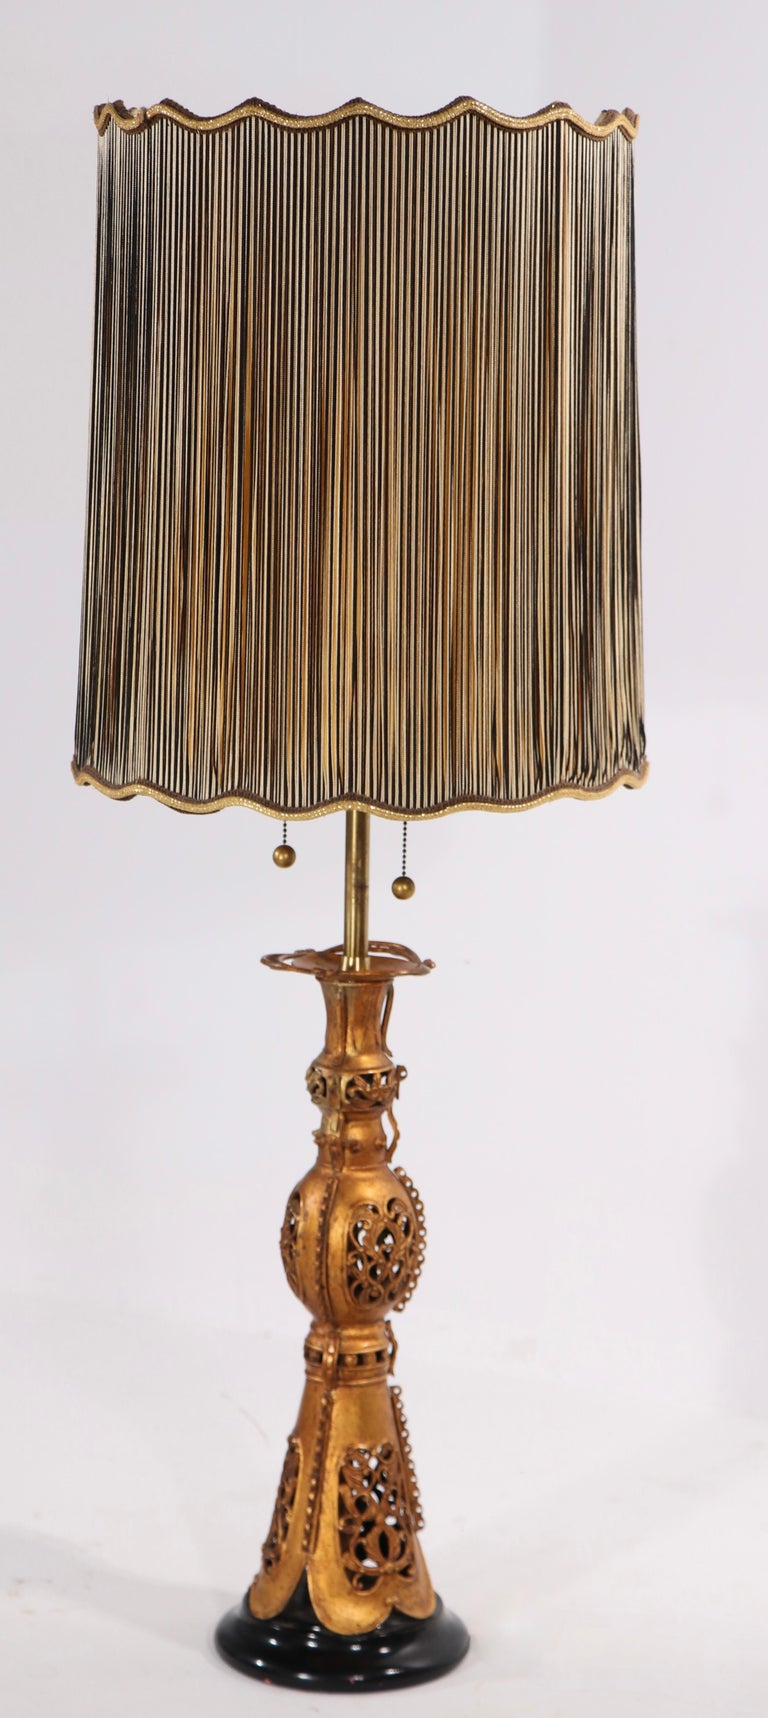 20th Century Pair Chinese Style Table Lamps by Marbro After James Mont For Sale